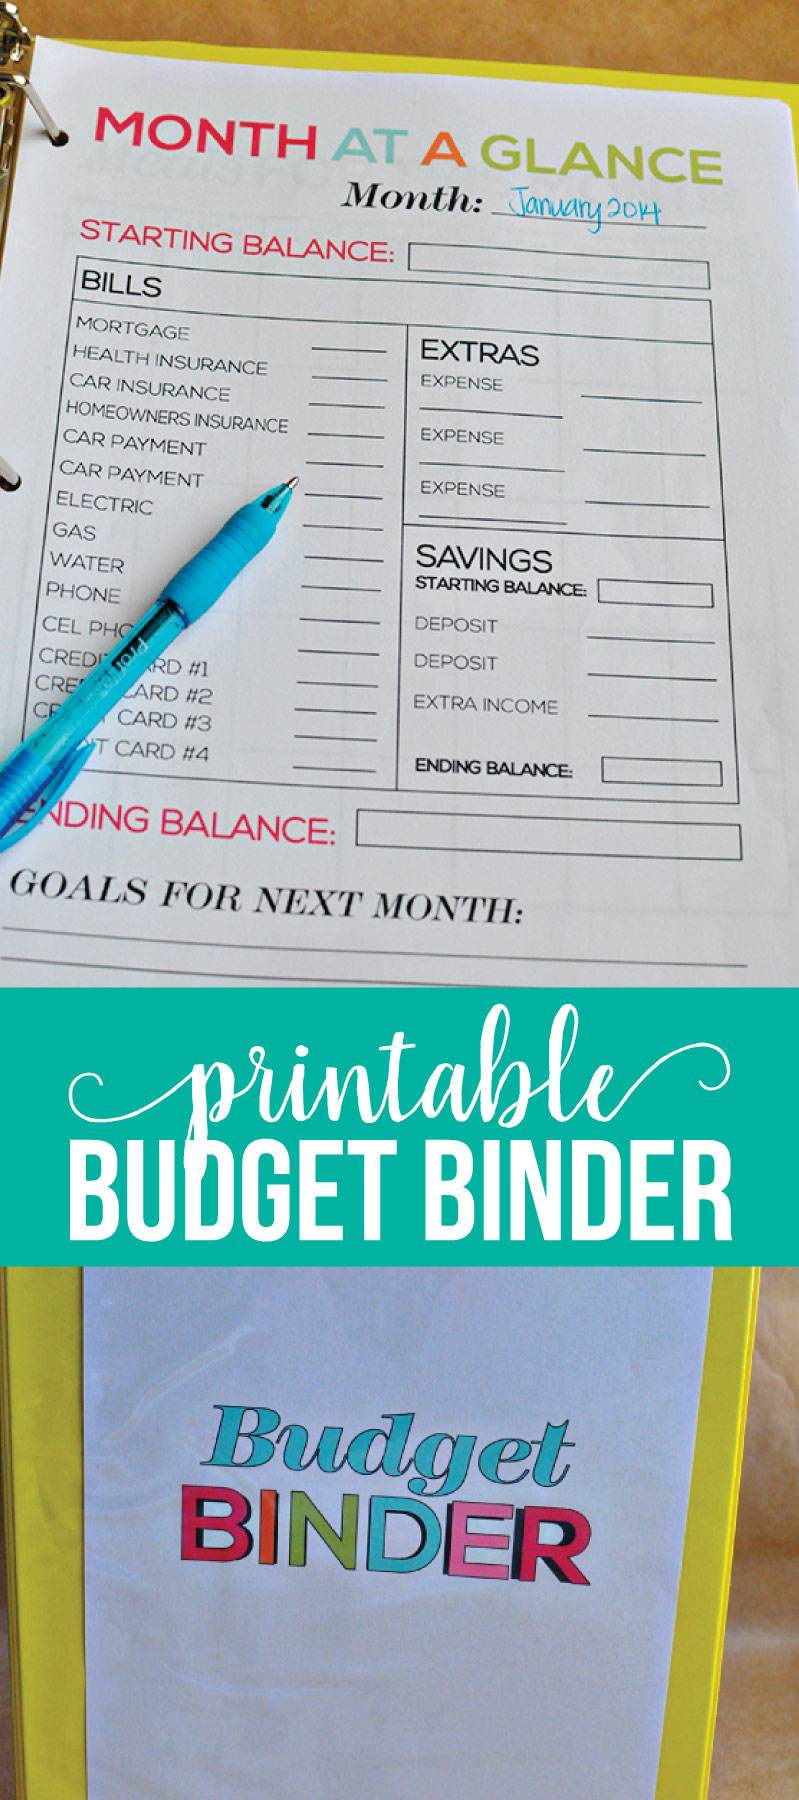 Printable Budget Binder- download these budgeting sheets to get your  finances in order. www